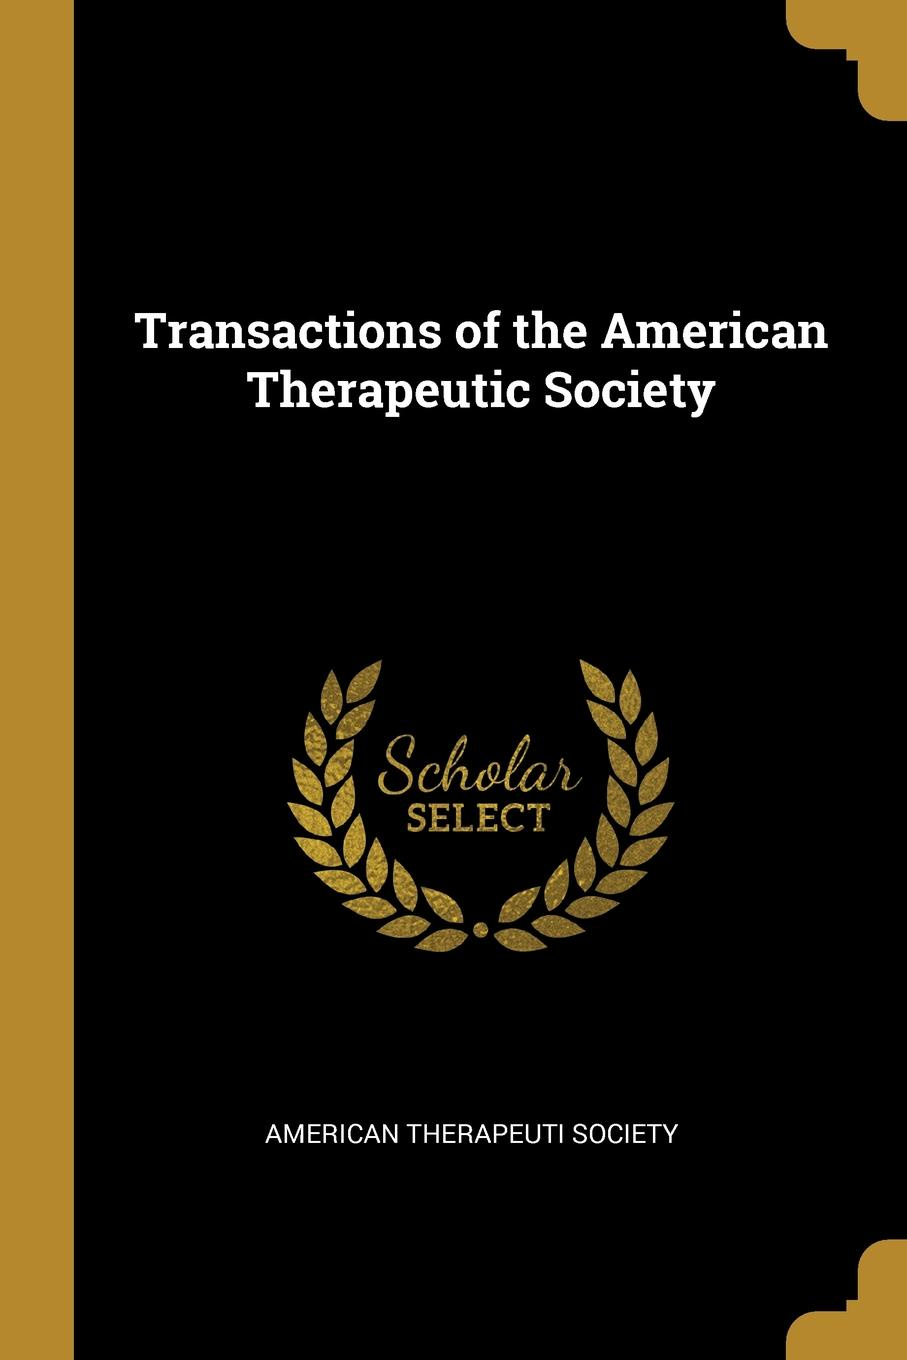 American Therapeuti Society Transactions of the American Therapeutic Society